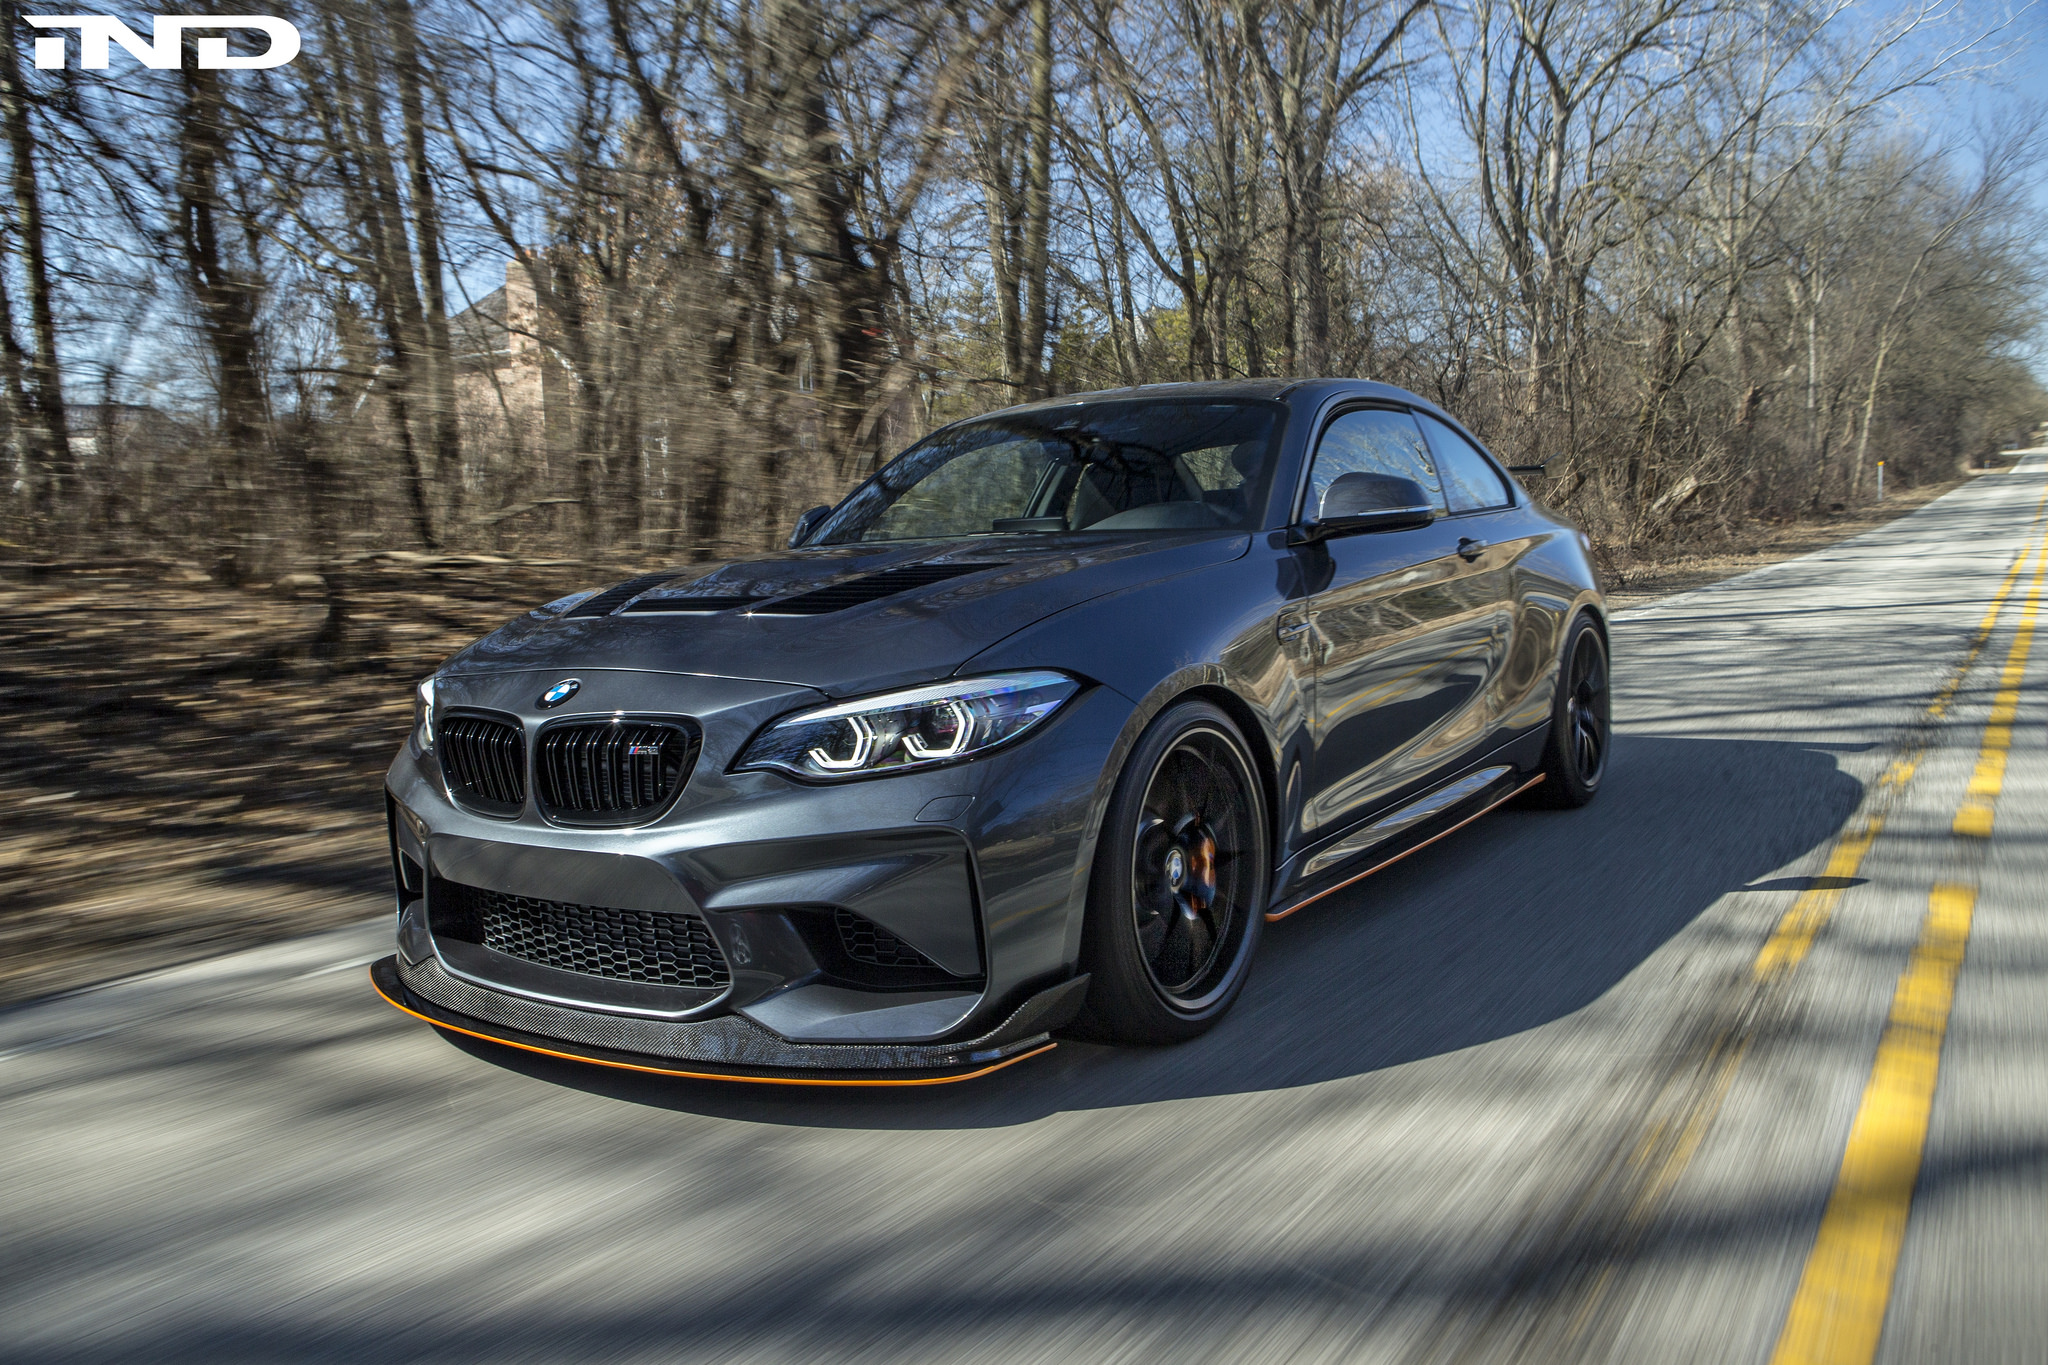 Mineral Gray BMW M2 Build By IND Distribution Image 1